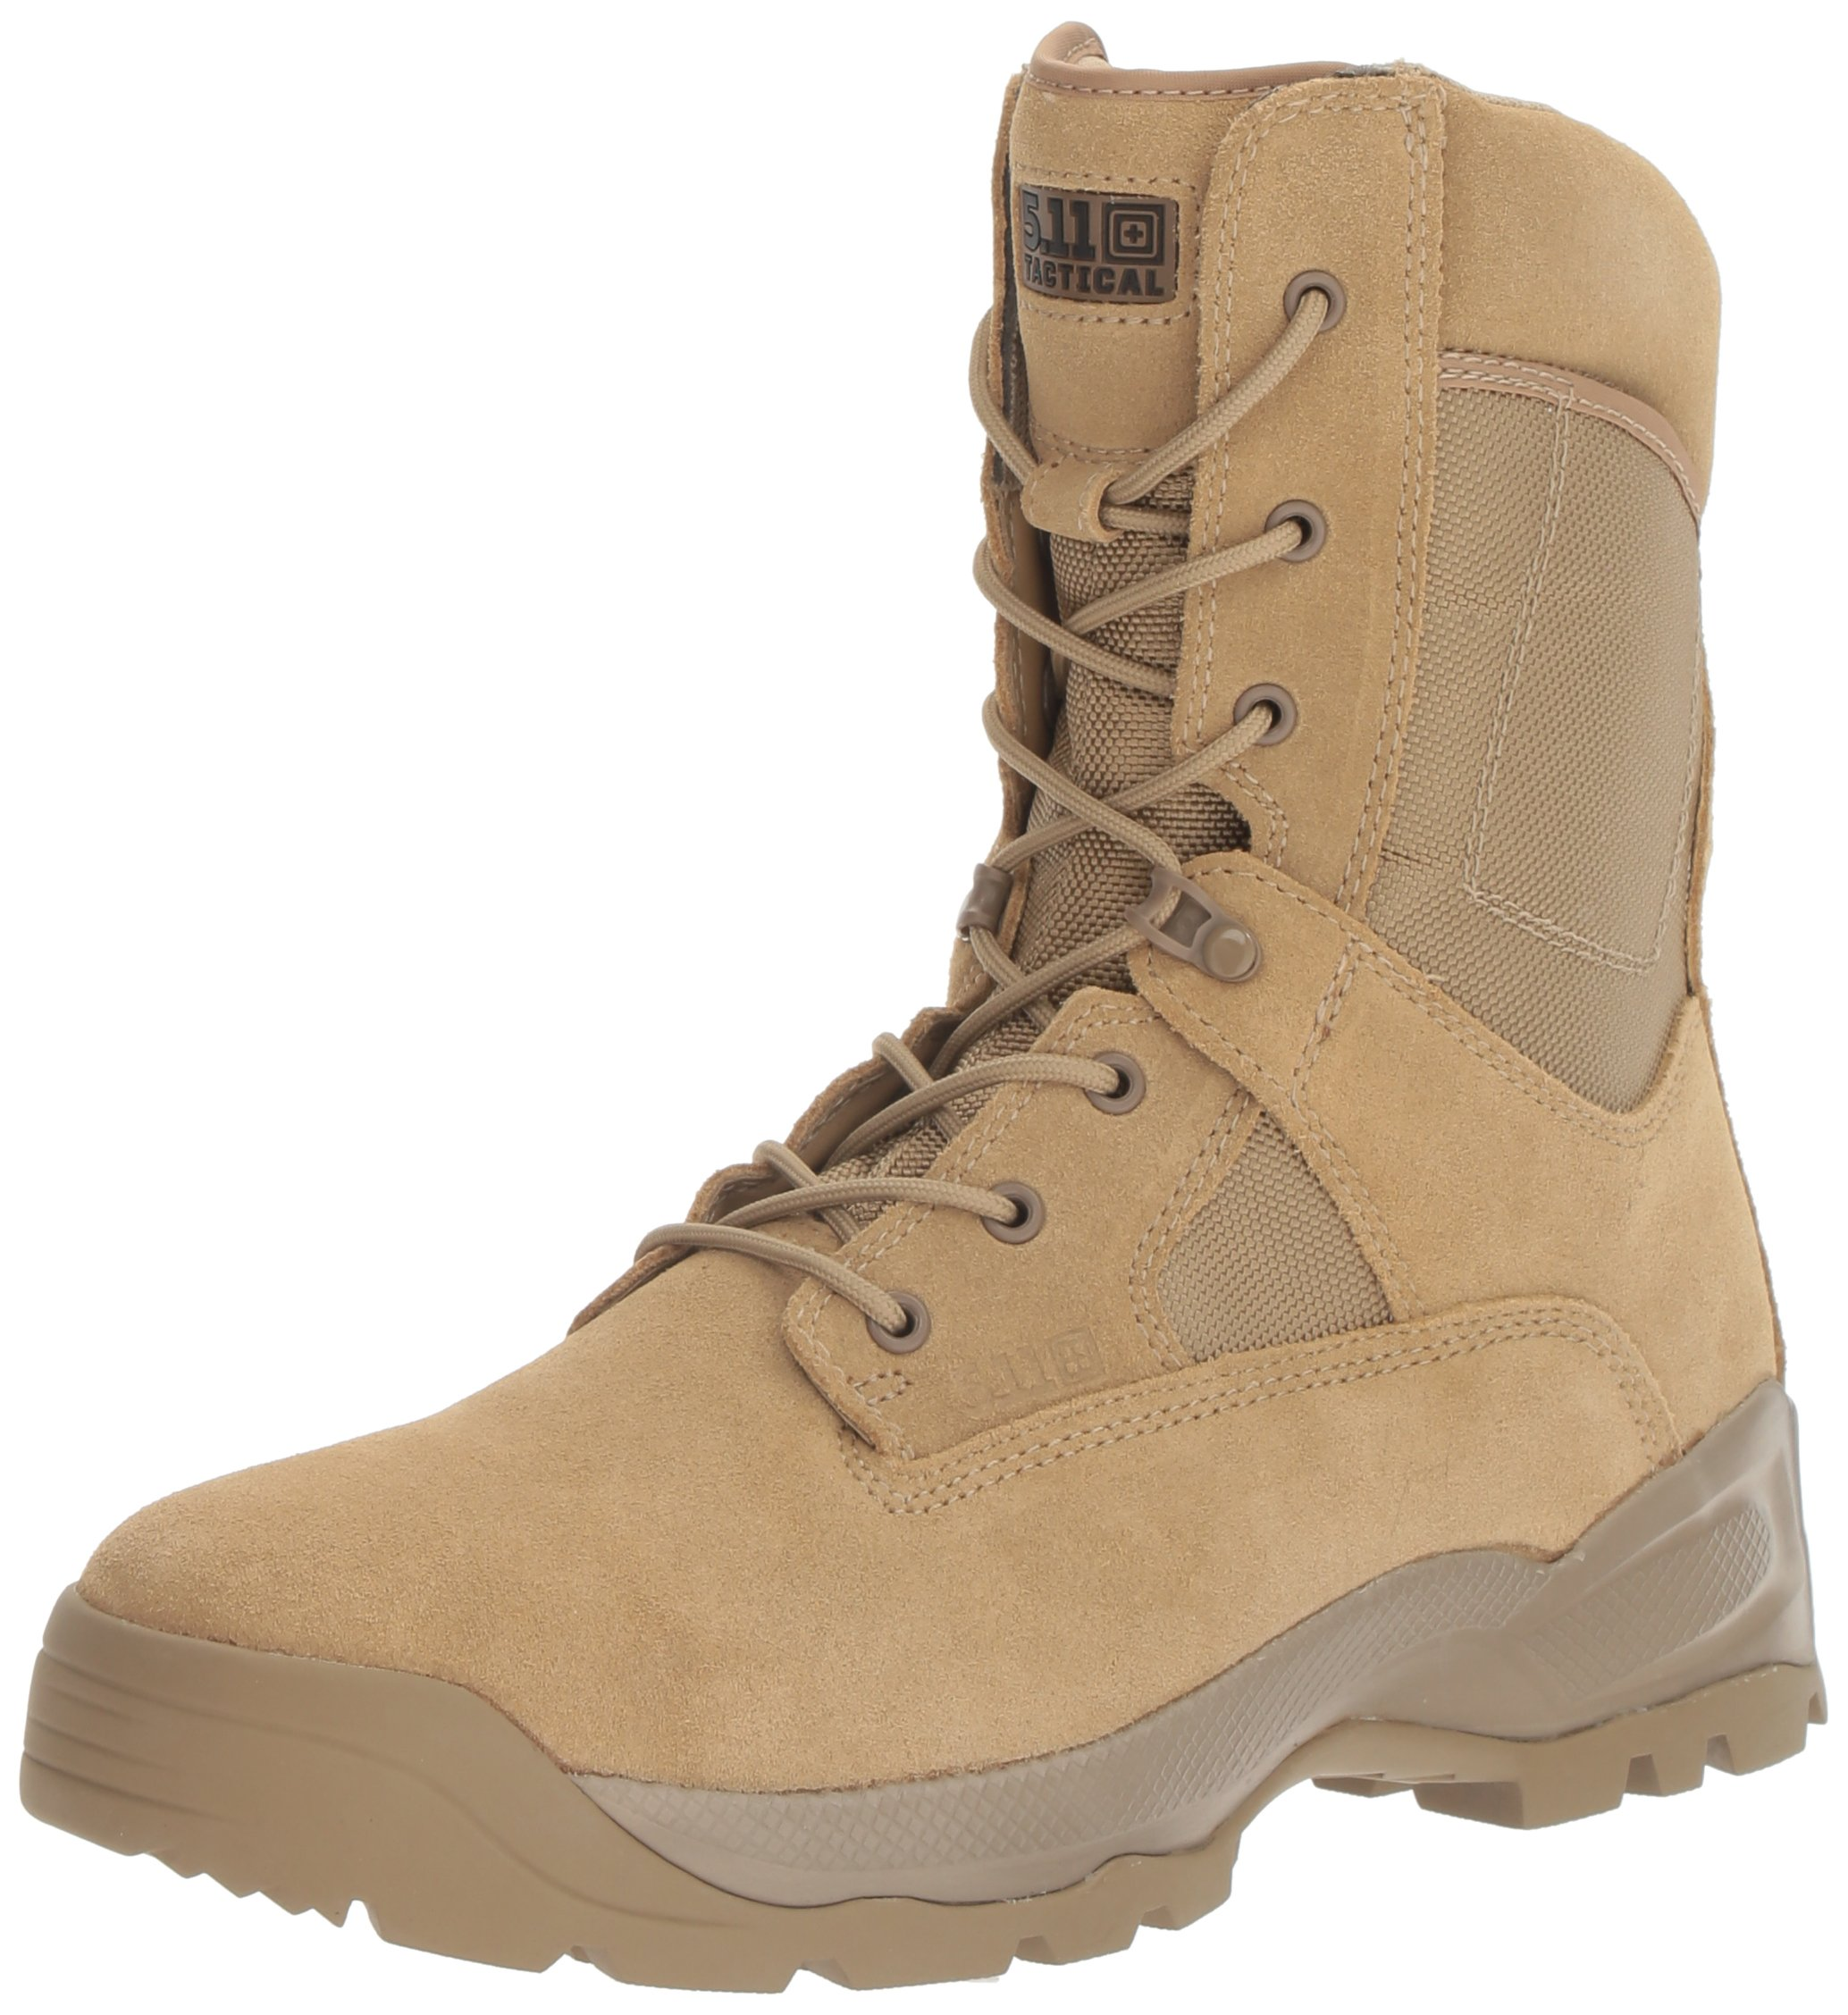 5.11 Tactical A.T.A.C. 8'' Boot, Coyote, 7.5 (W)